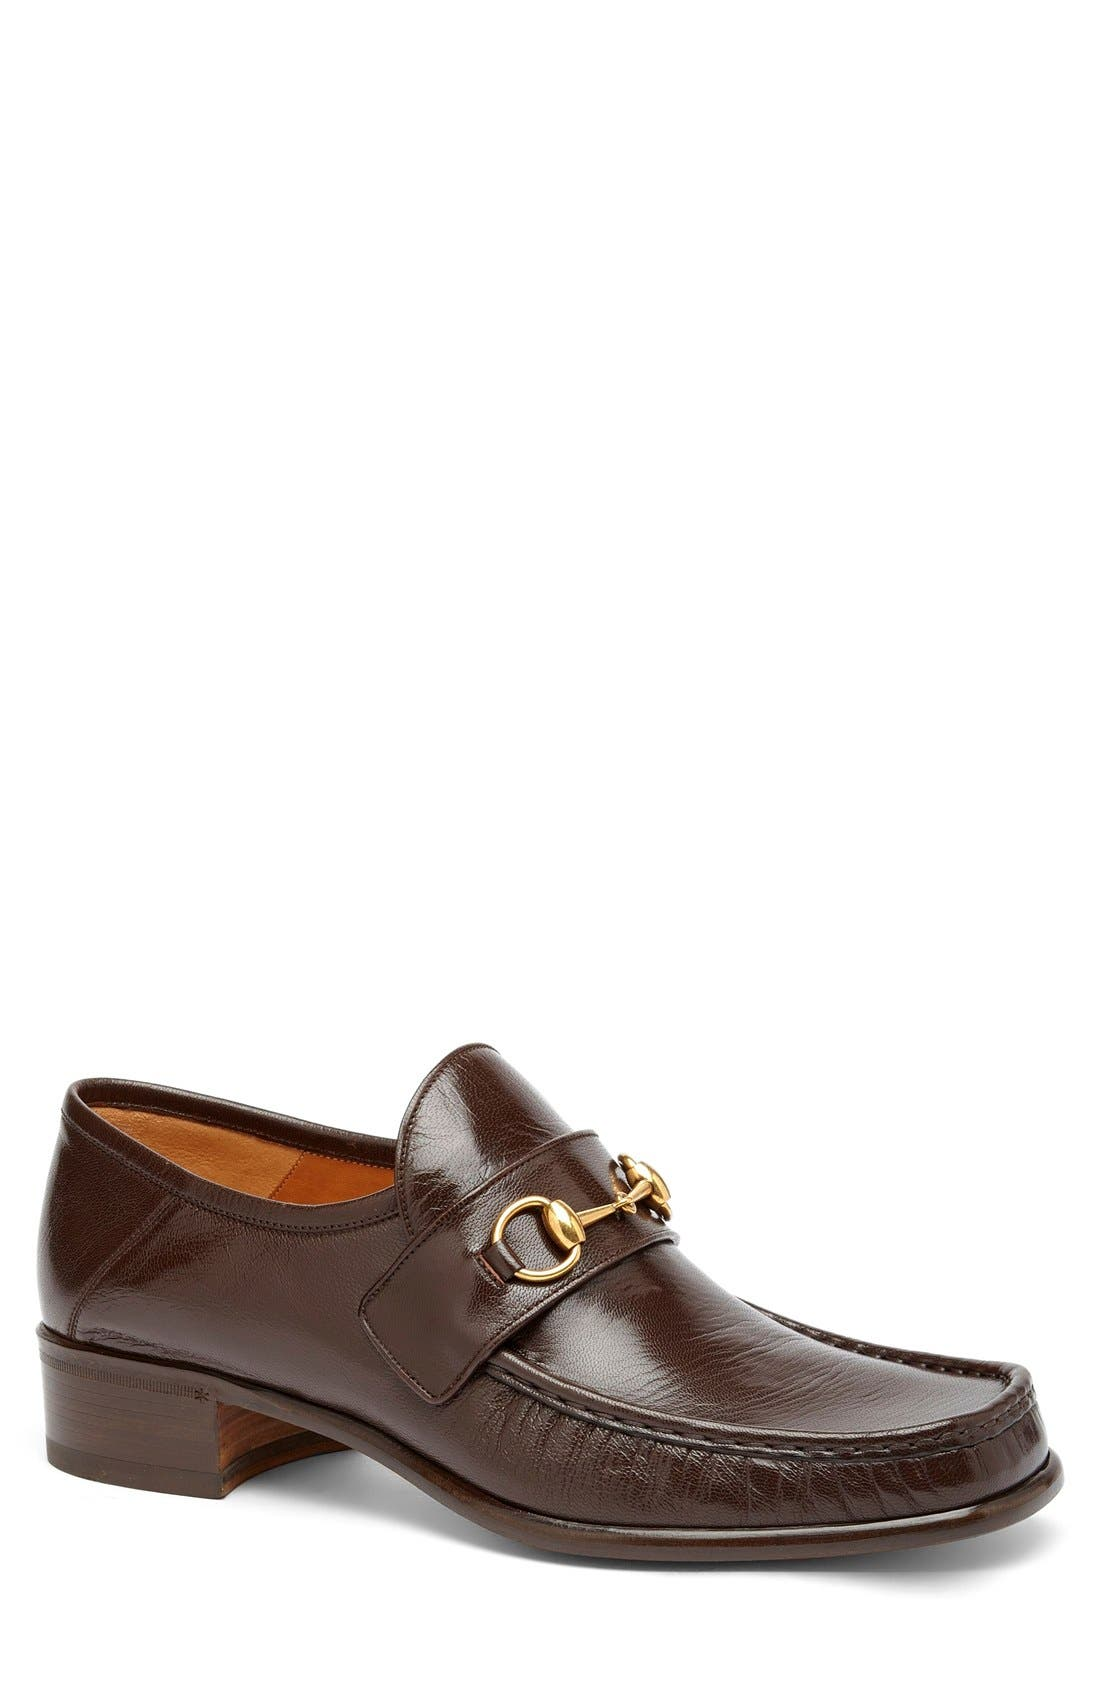 Vegas Bit Loafer,                         Main,                         color, Cocoa Leather